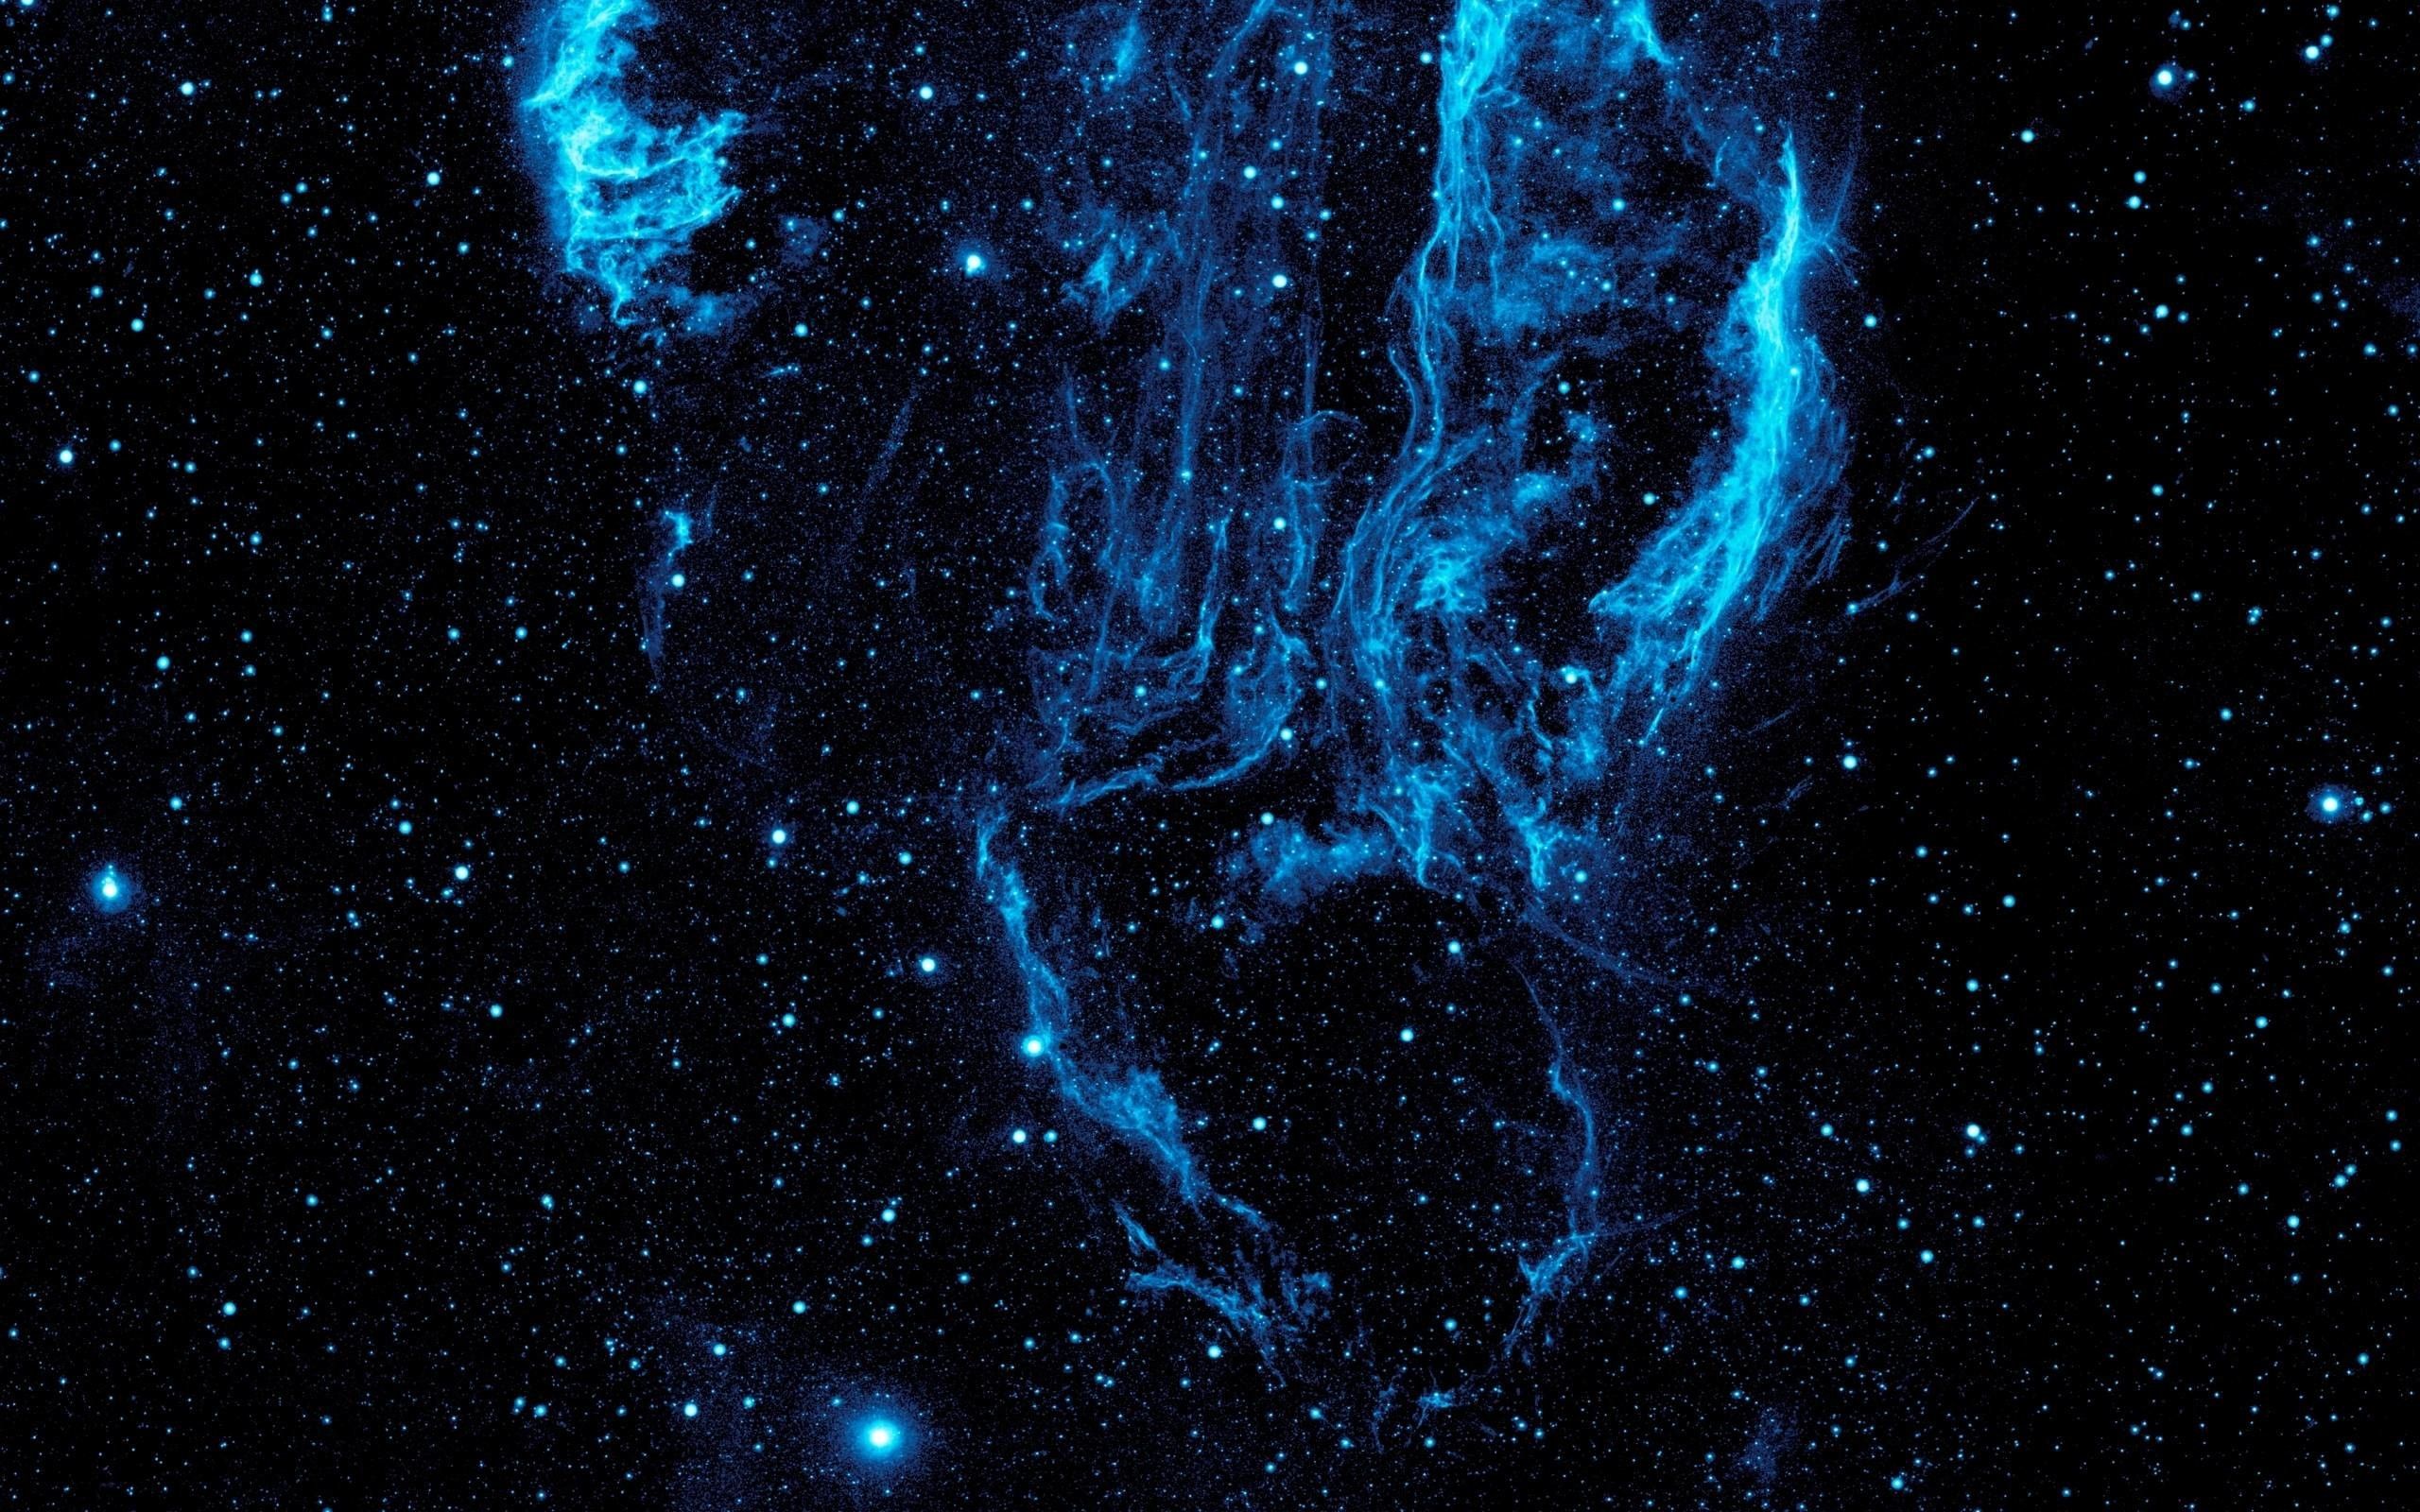 Download Blue Space Wallpaper 32324 px High Resolution .